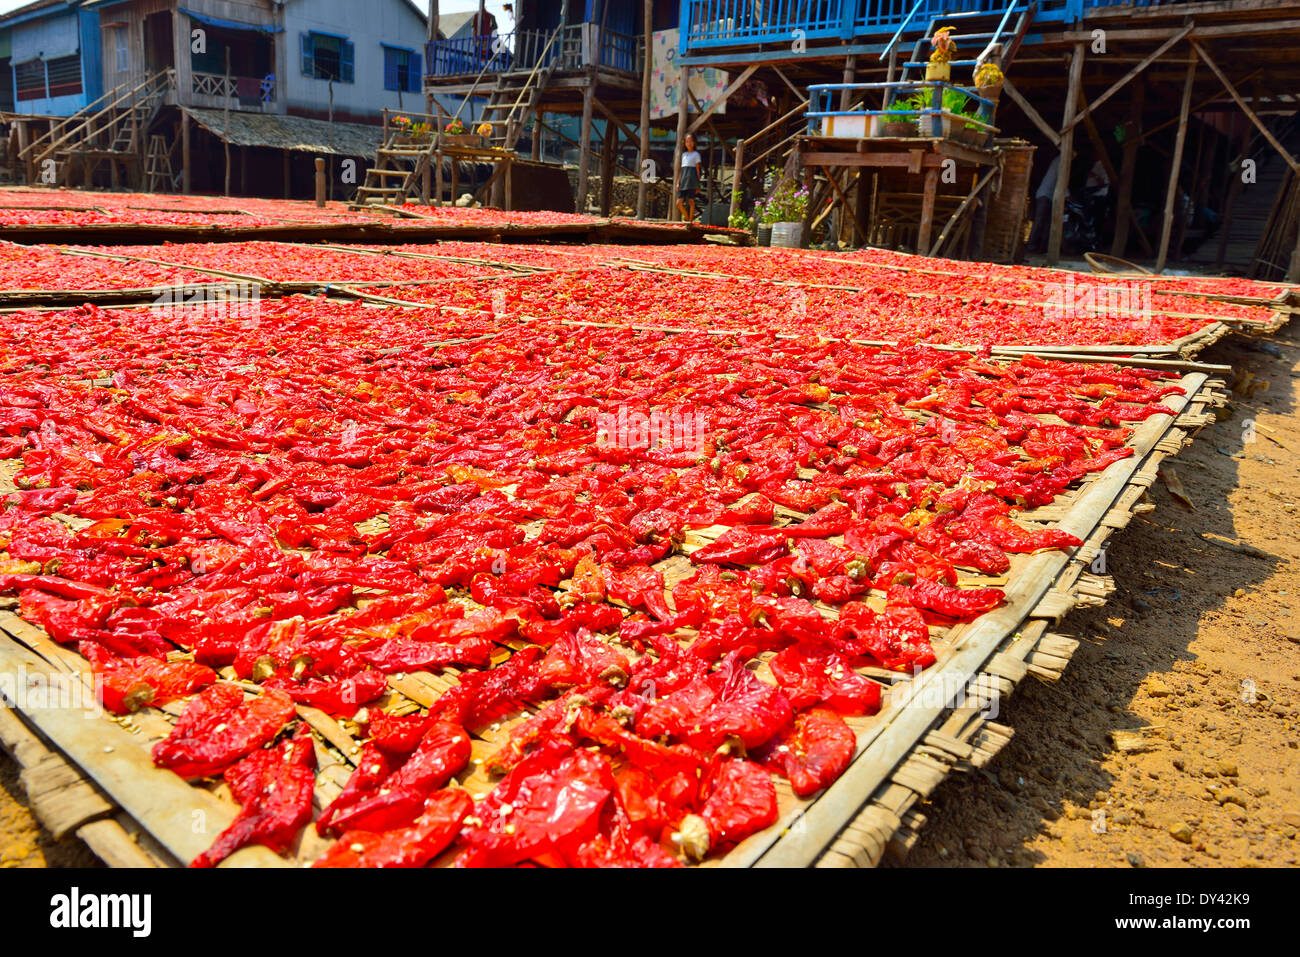 Cooked and salted prepared chili peppers from under the stilt houses left on bamboo trays out to sun dry  ,Cambodia - Stock Image